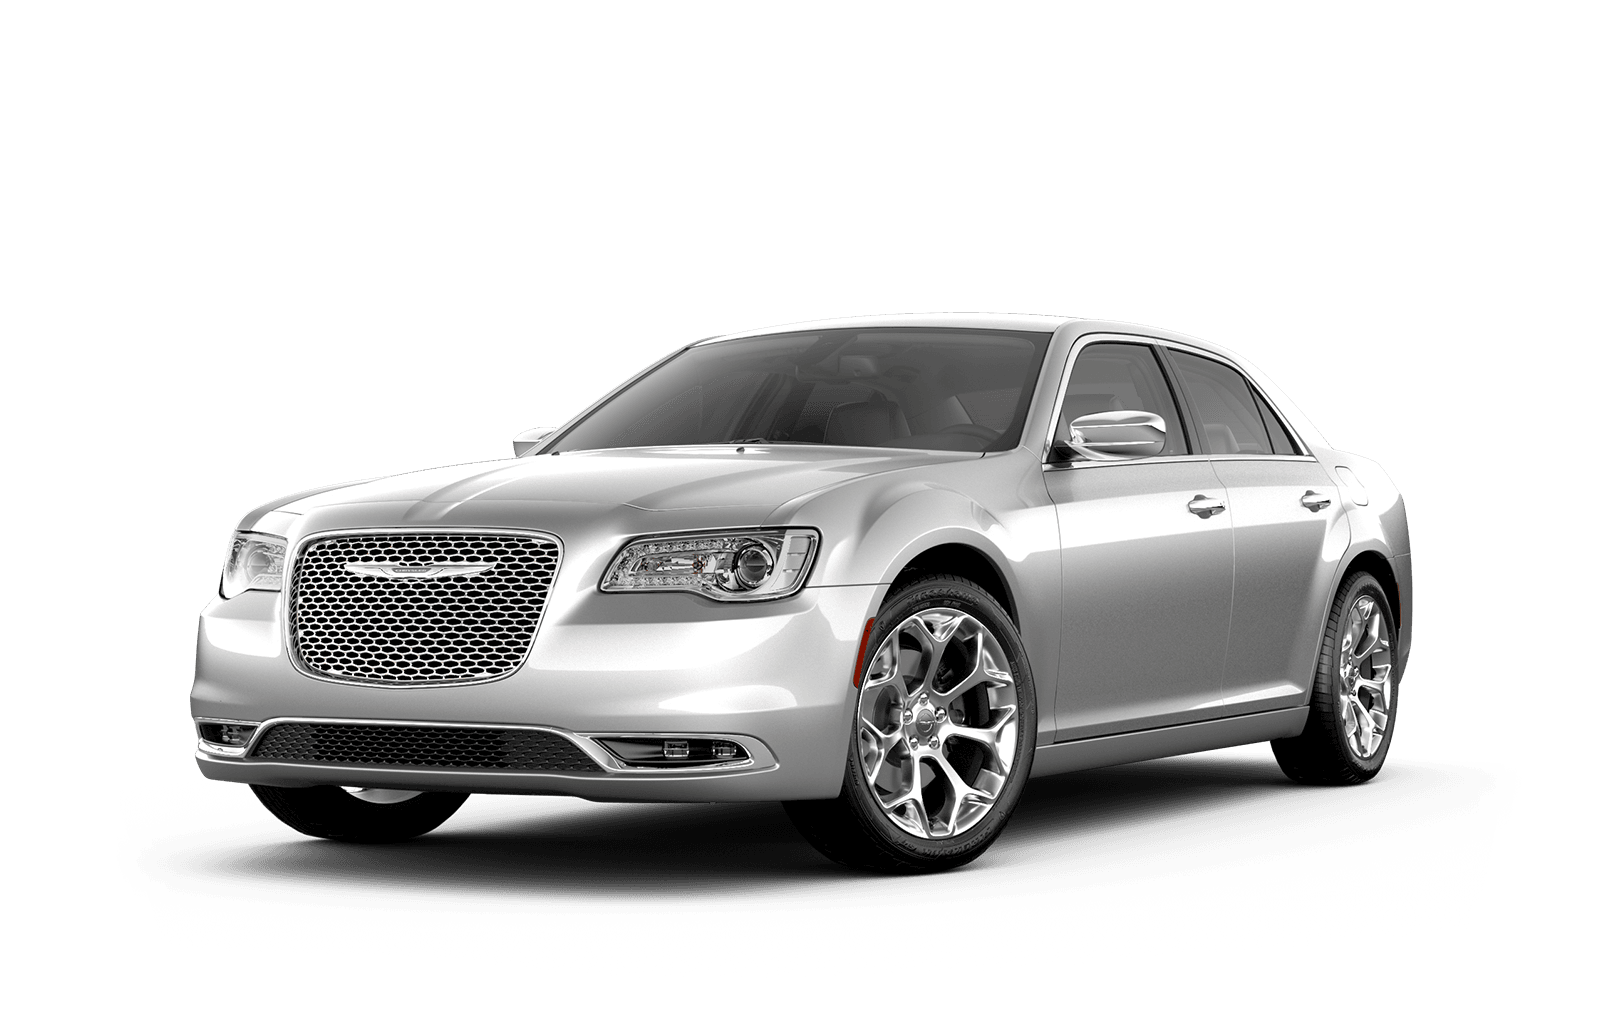 2019 Chrysler 300 Full View in Silver with Wheels